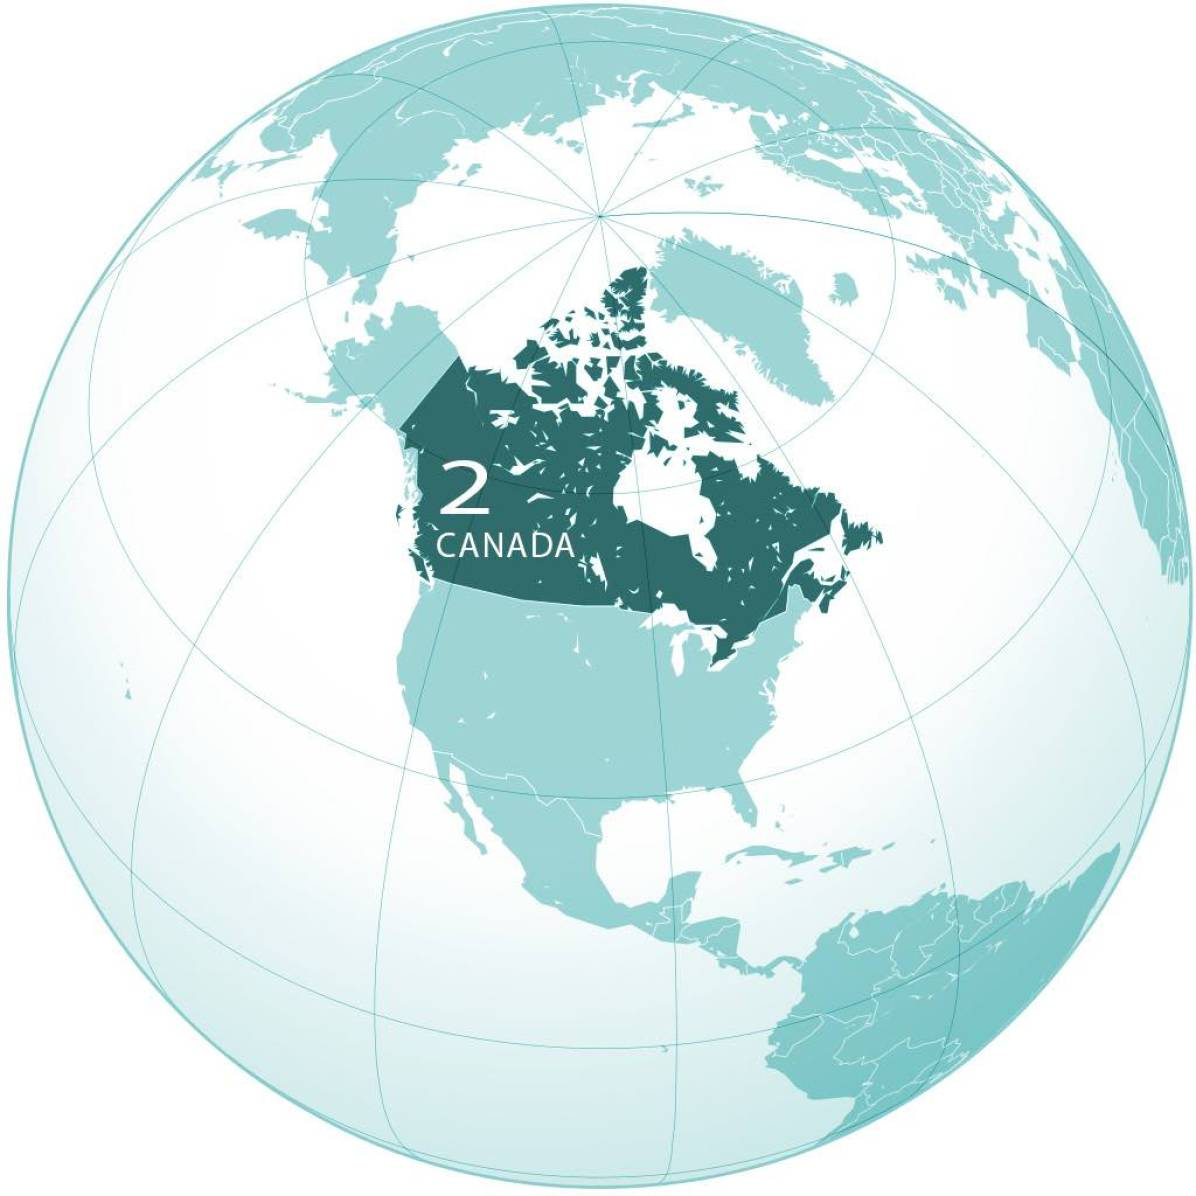 Canada World Map - by Ssolbergj/Wikimedia - created with the Generic Mapping Tools